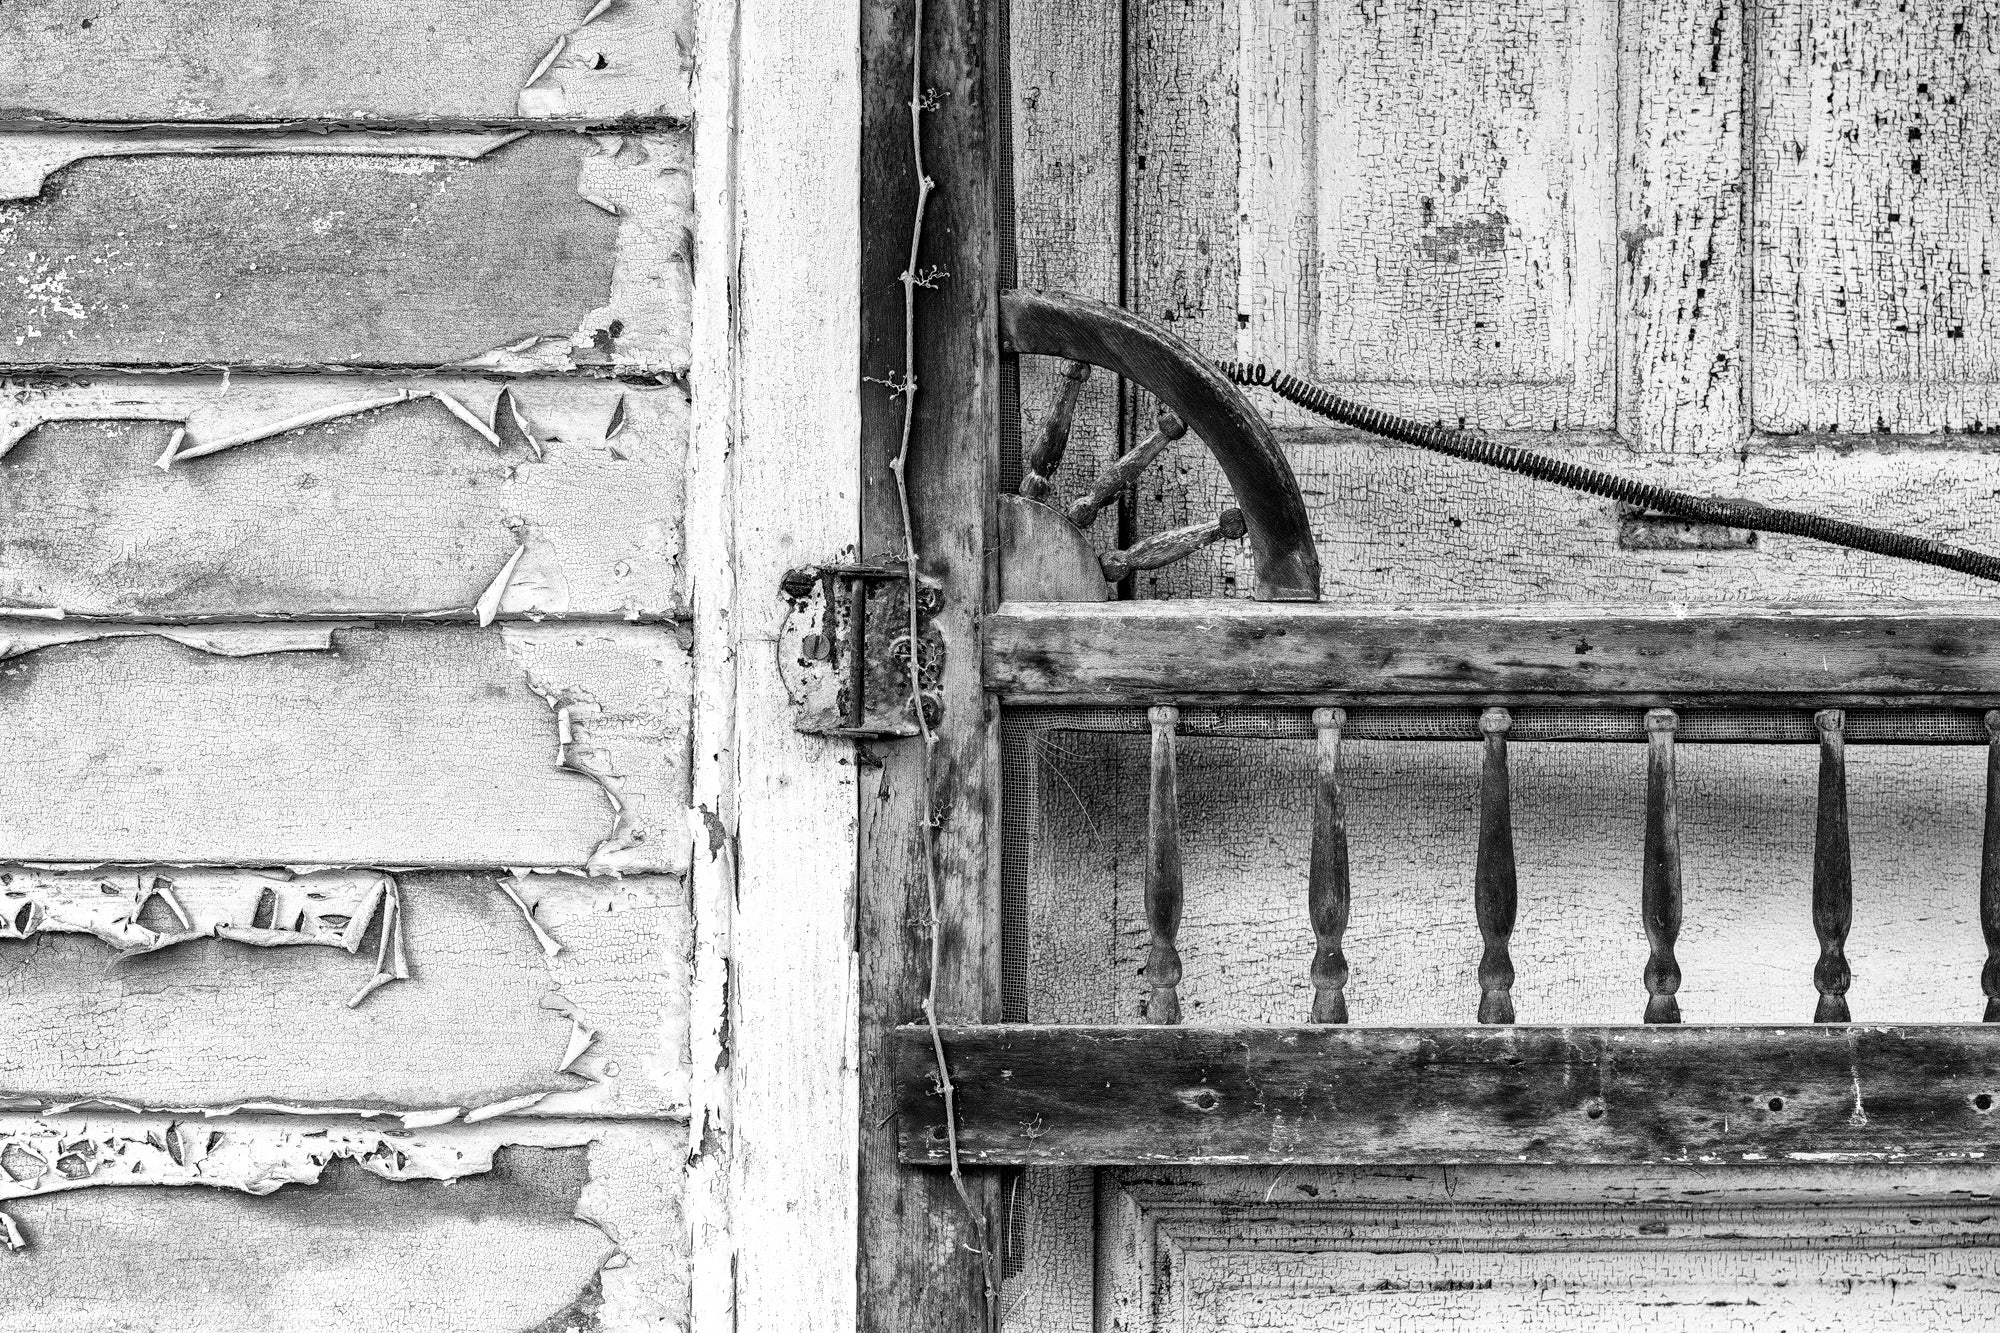 Woodwork Details on an Abandoned Country Store: Black and White Photograph by Keith Dotson. Buy a fine art print.